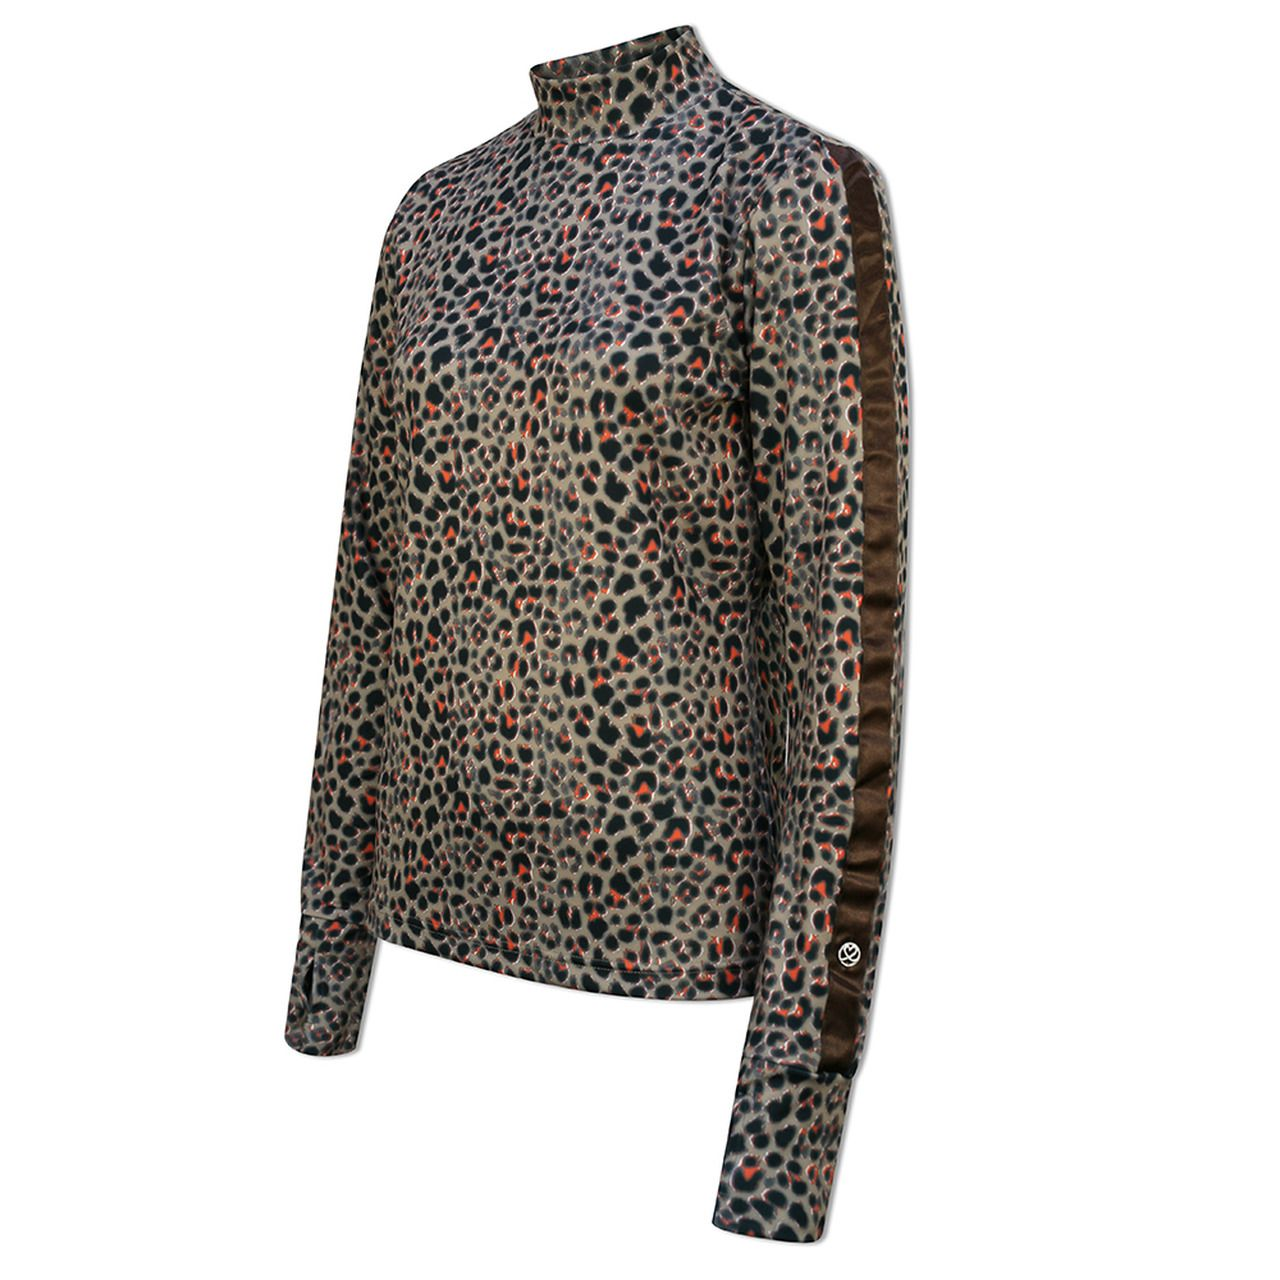 Daily Sports Mock Neck in Almond Animal Print Long